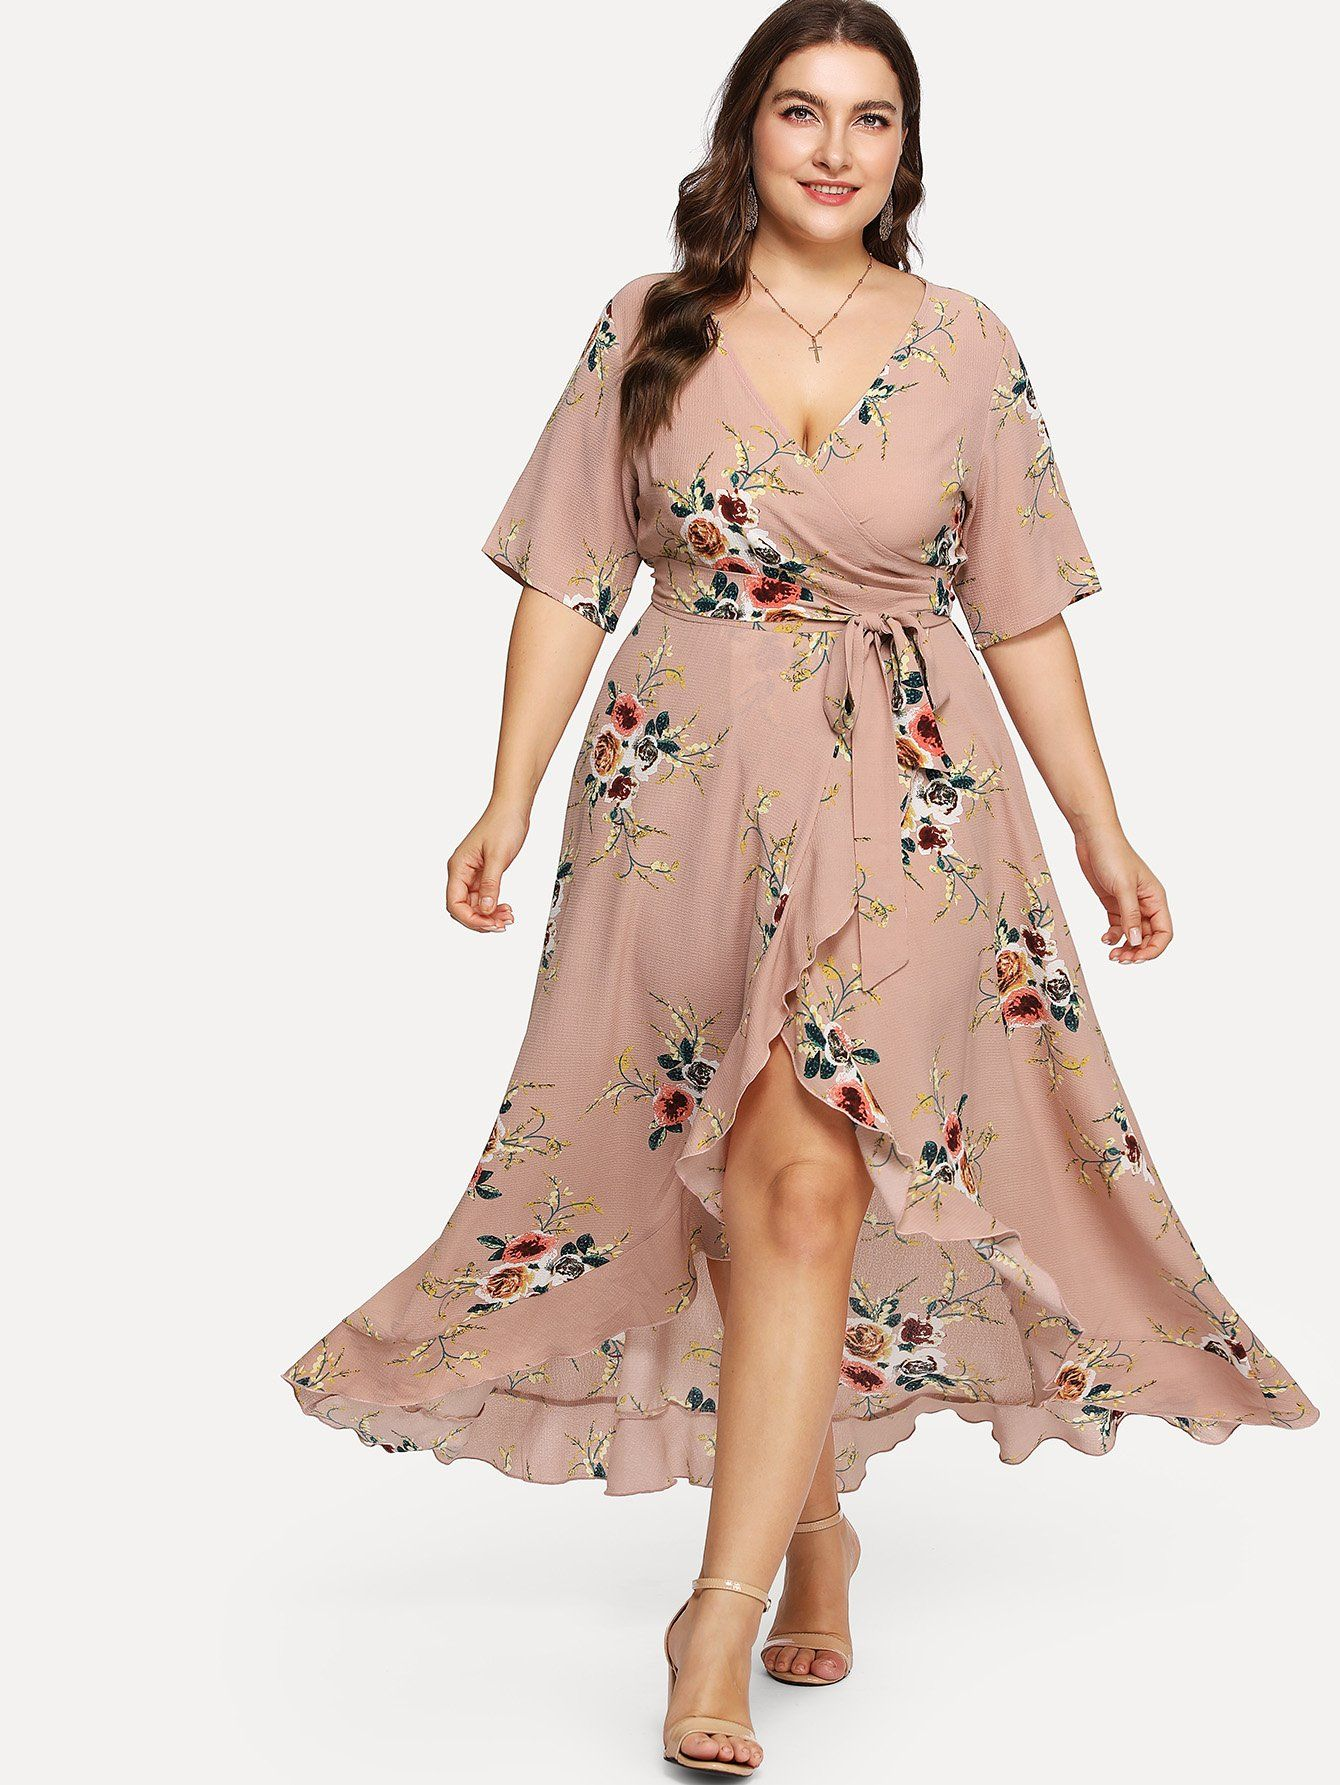 Shein Com Is Mainly Design And Produce Fashion Clothing For Women All Over The World For About 5 Years Shop For Plus Size Outfits Big Size Dress Size Fashion [ 1785 x 1340 Pixel ]